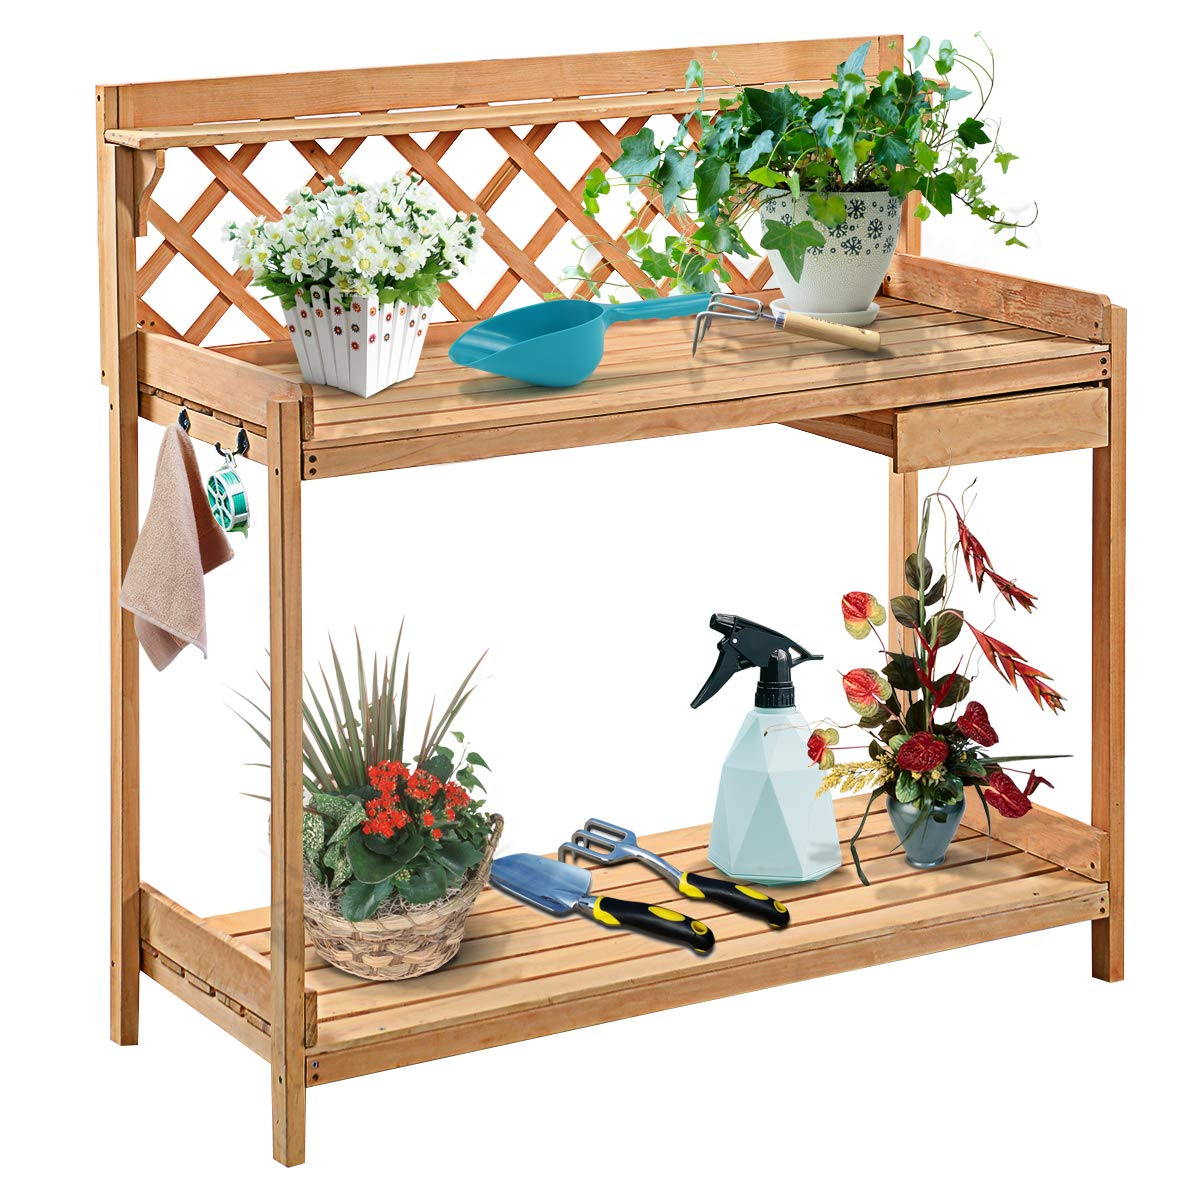 Giantex Potting Bench Garden Potting Benches Outdoor Planting and Gardening Work Station Solid Wood Construction Potting Table with Side Drawer and Rack Shelves 44'' L x 20'' W x 45'' H, Natural